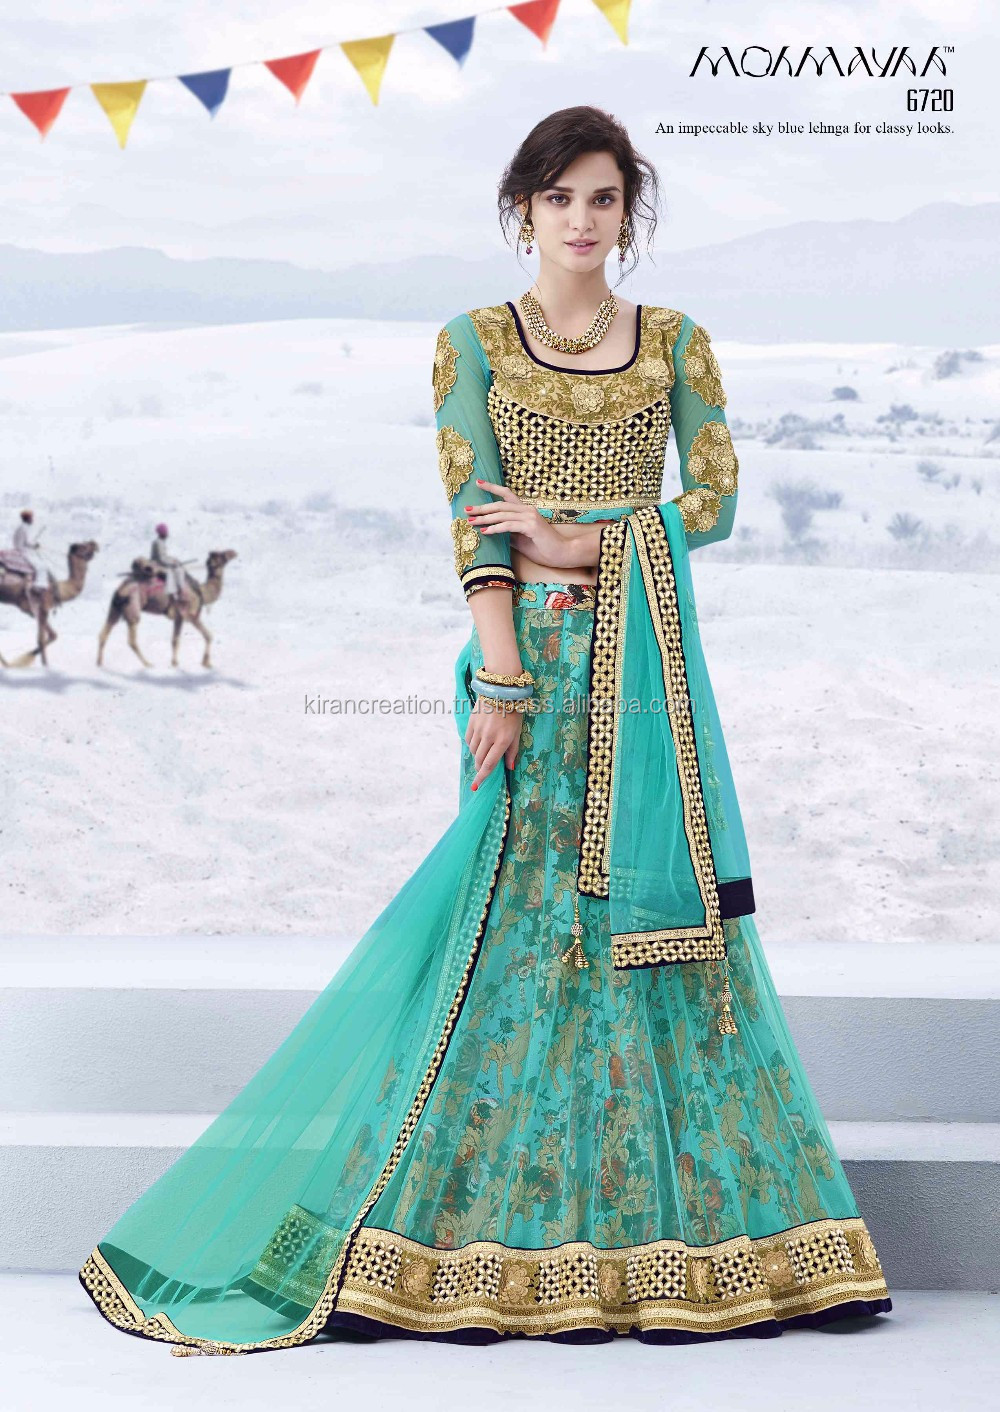 CREAM COLOR LEHENGA IN NET FABRIC .IT IS DETAILED WITH RESHAM, STONE WORK AND GLITTER PRINT.